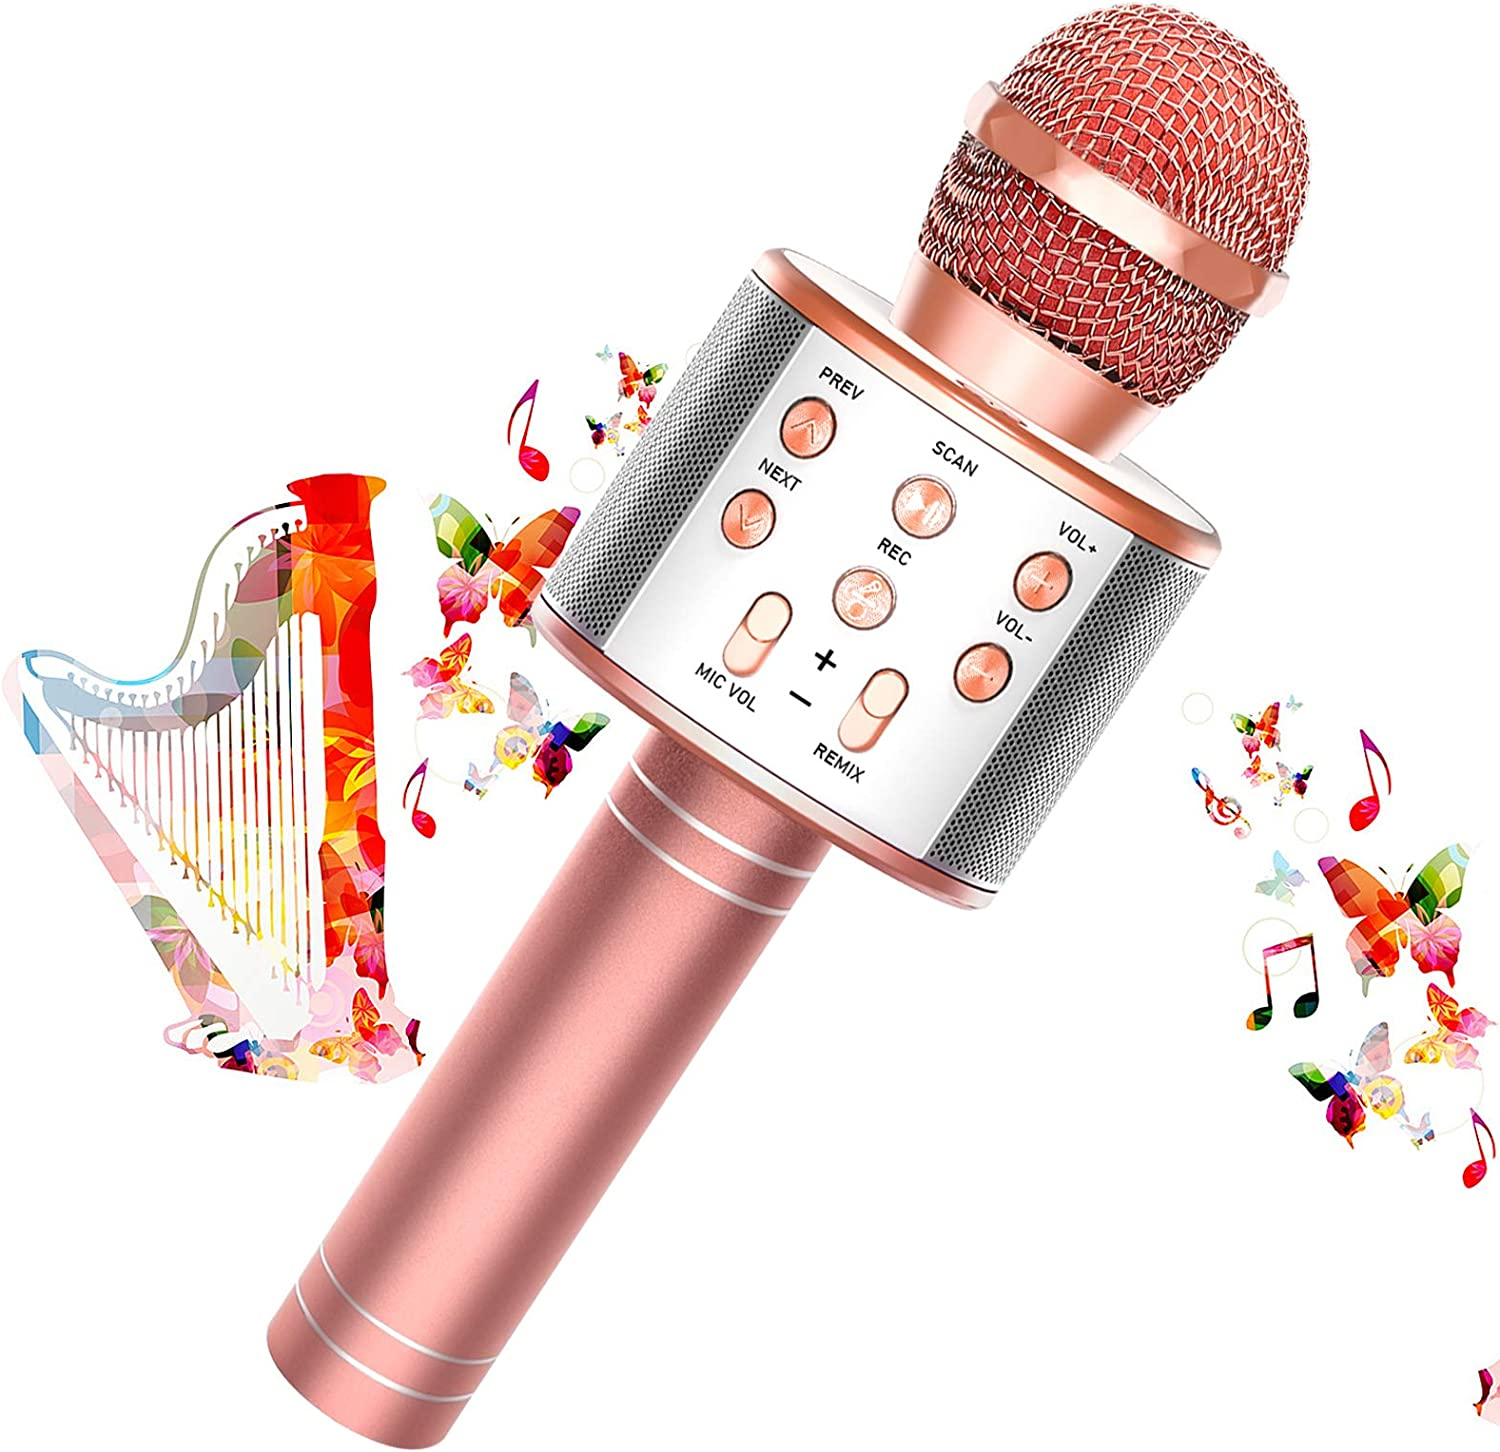 Toy'n Karaoke Microphone for Kids, 3 in 1 Wireless Portable Handheld Mic Karaoke Machine for Christmas Home Birthday Party, Voice Disguiser Karaoke Microphone for Kids